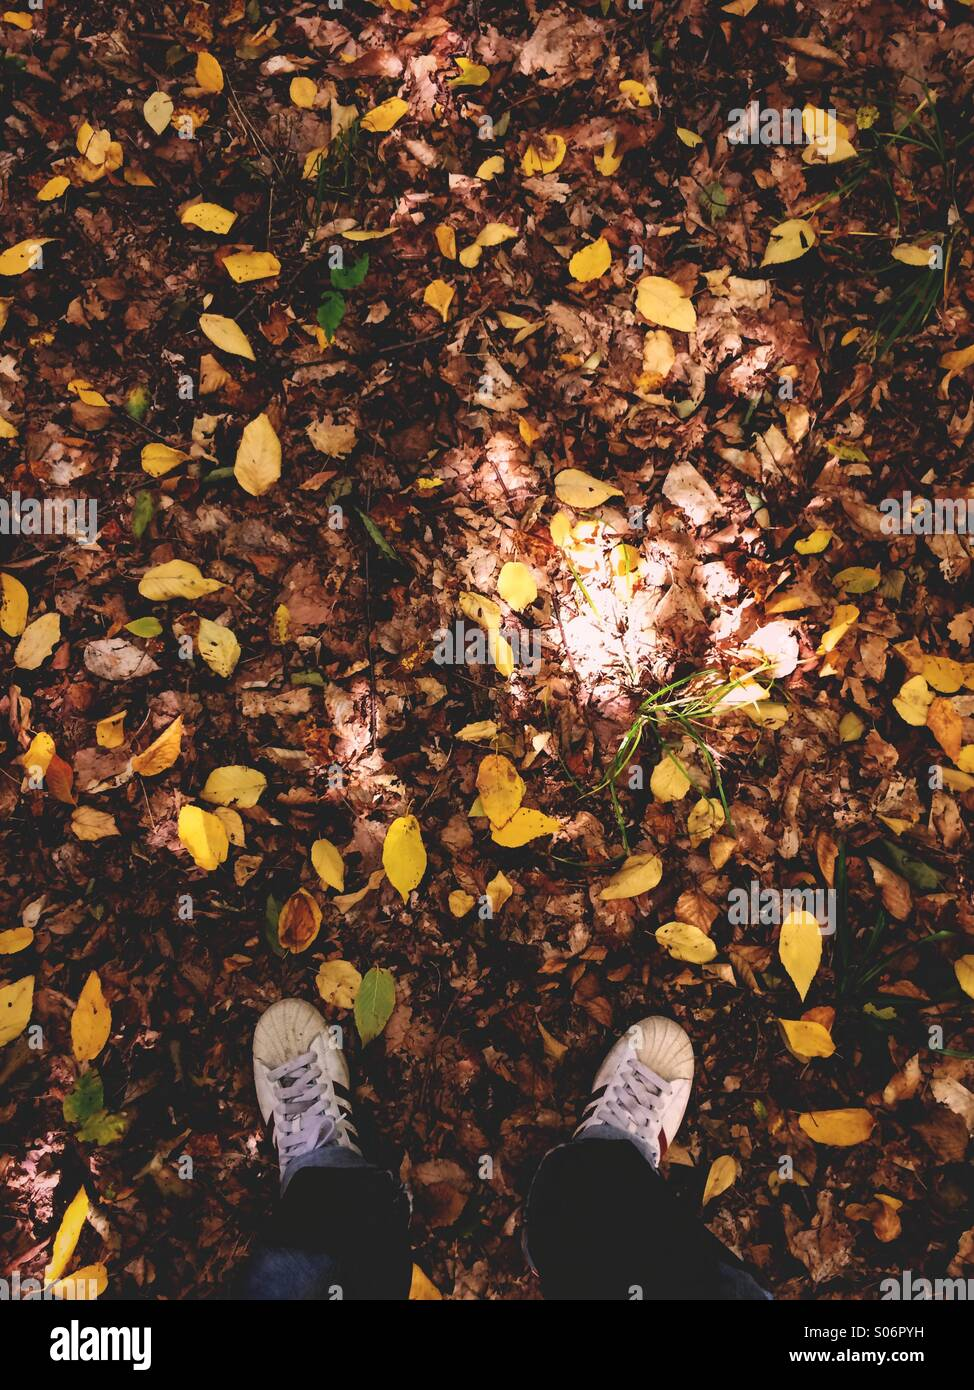 A man's feet standing in fall leaves at the start of autumn. - Stock Image